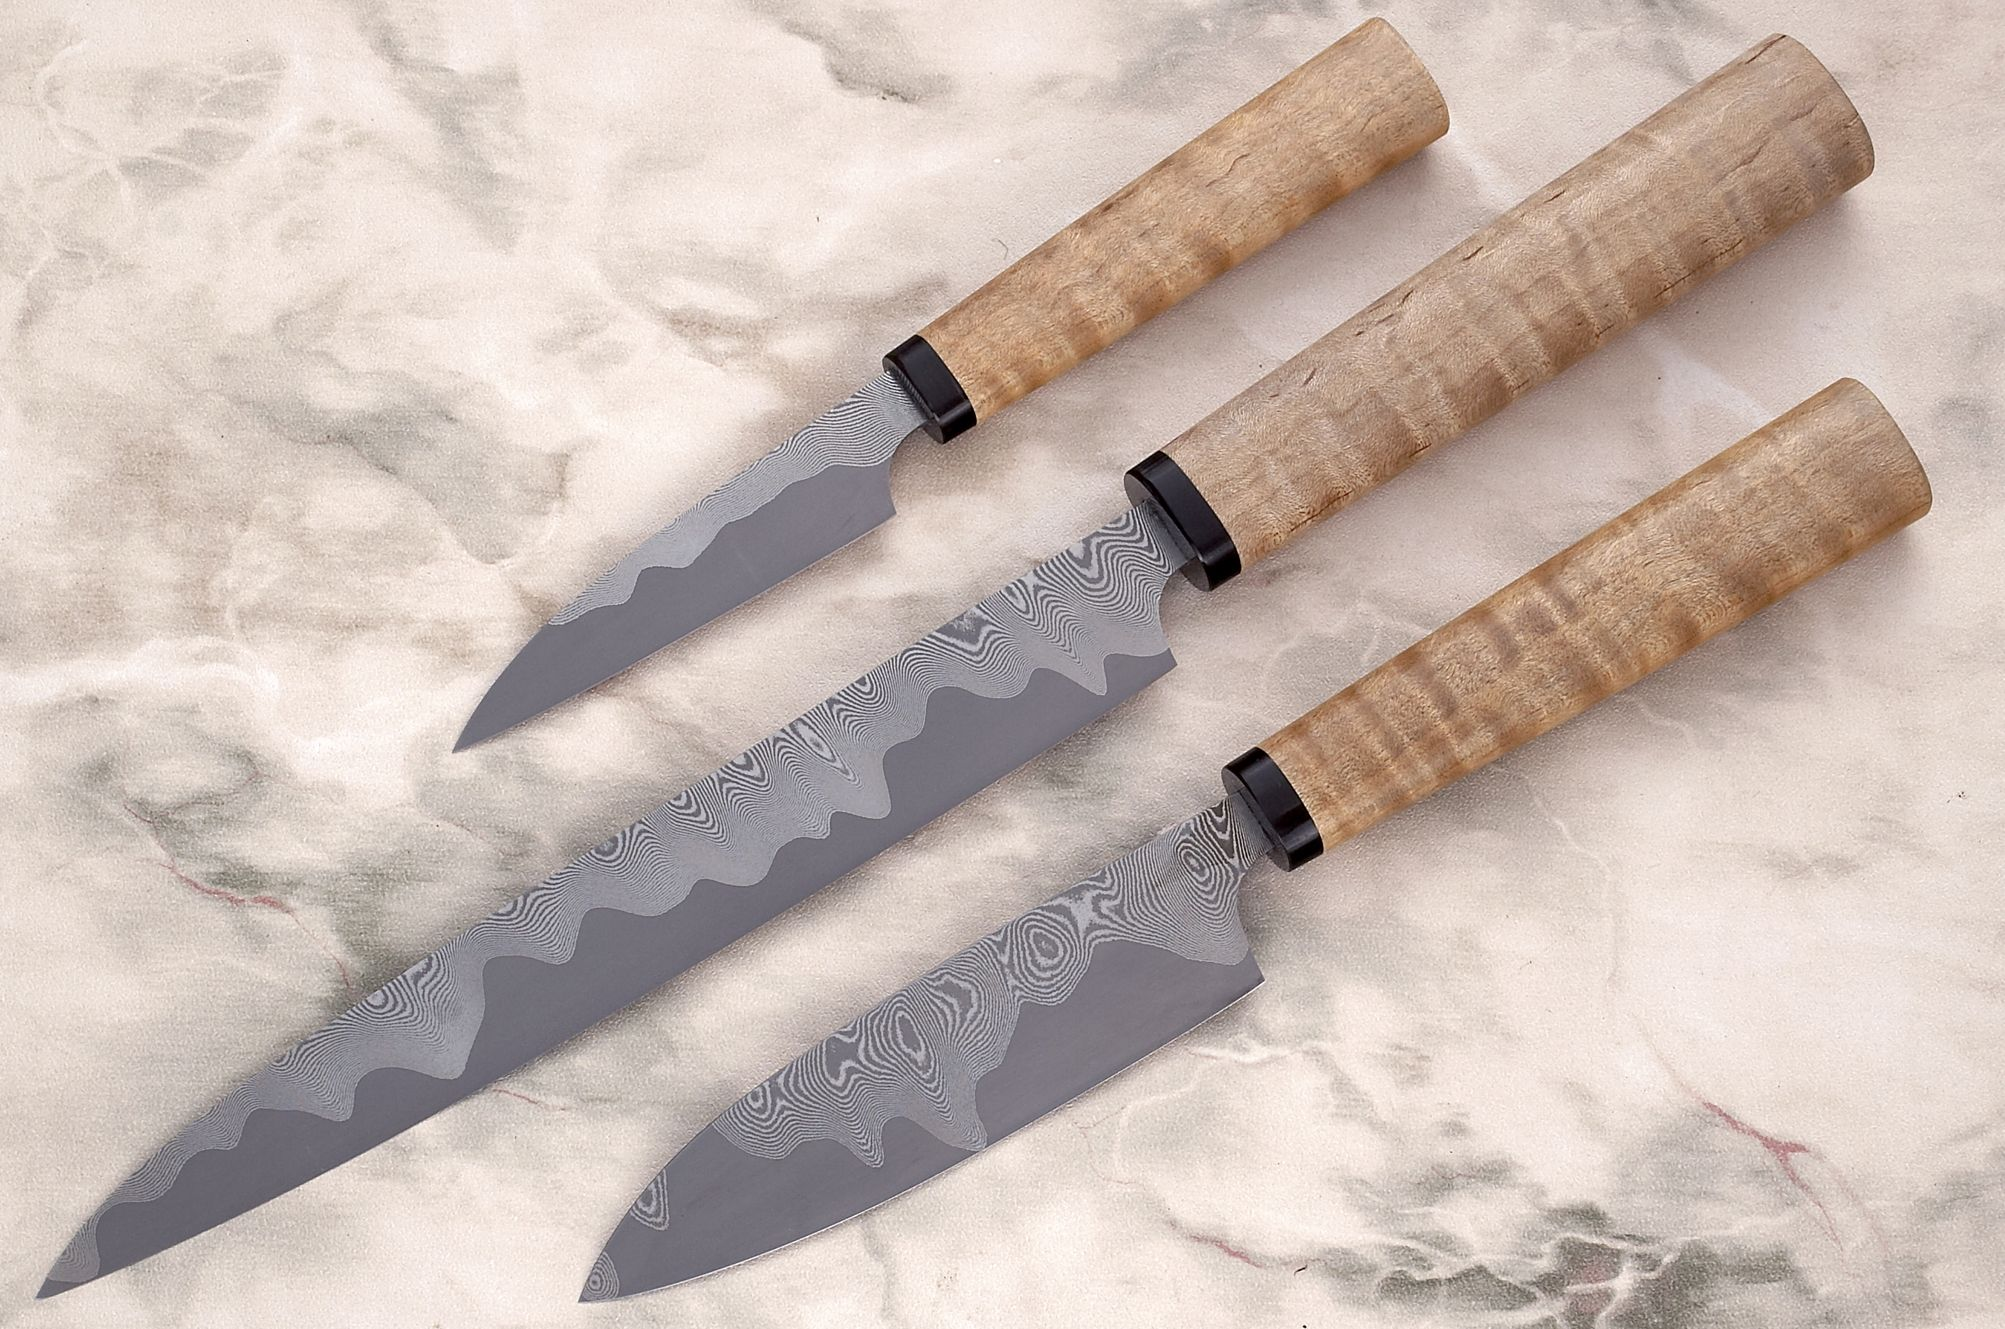 78+ images about some blade on pinterest | best chef, damascus